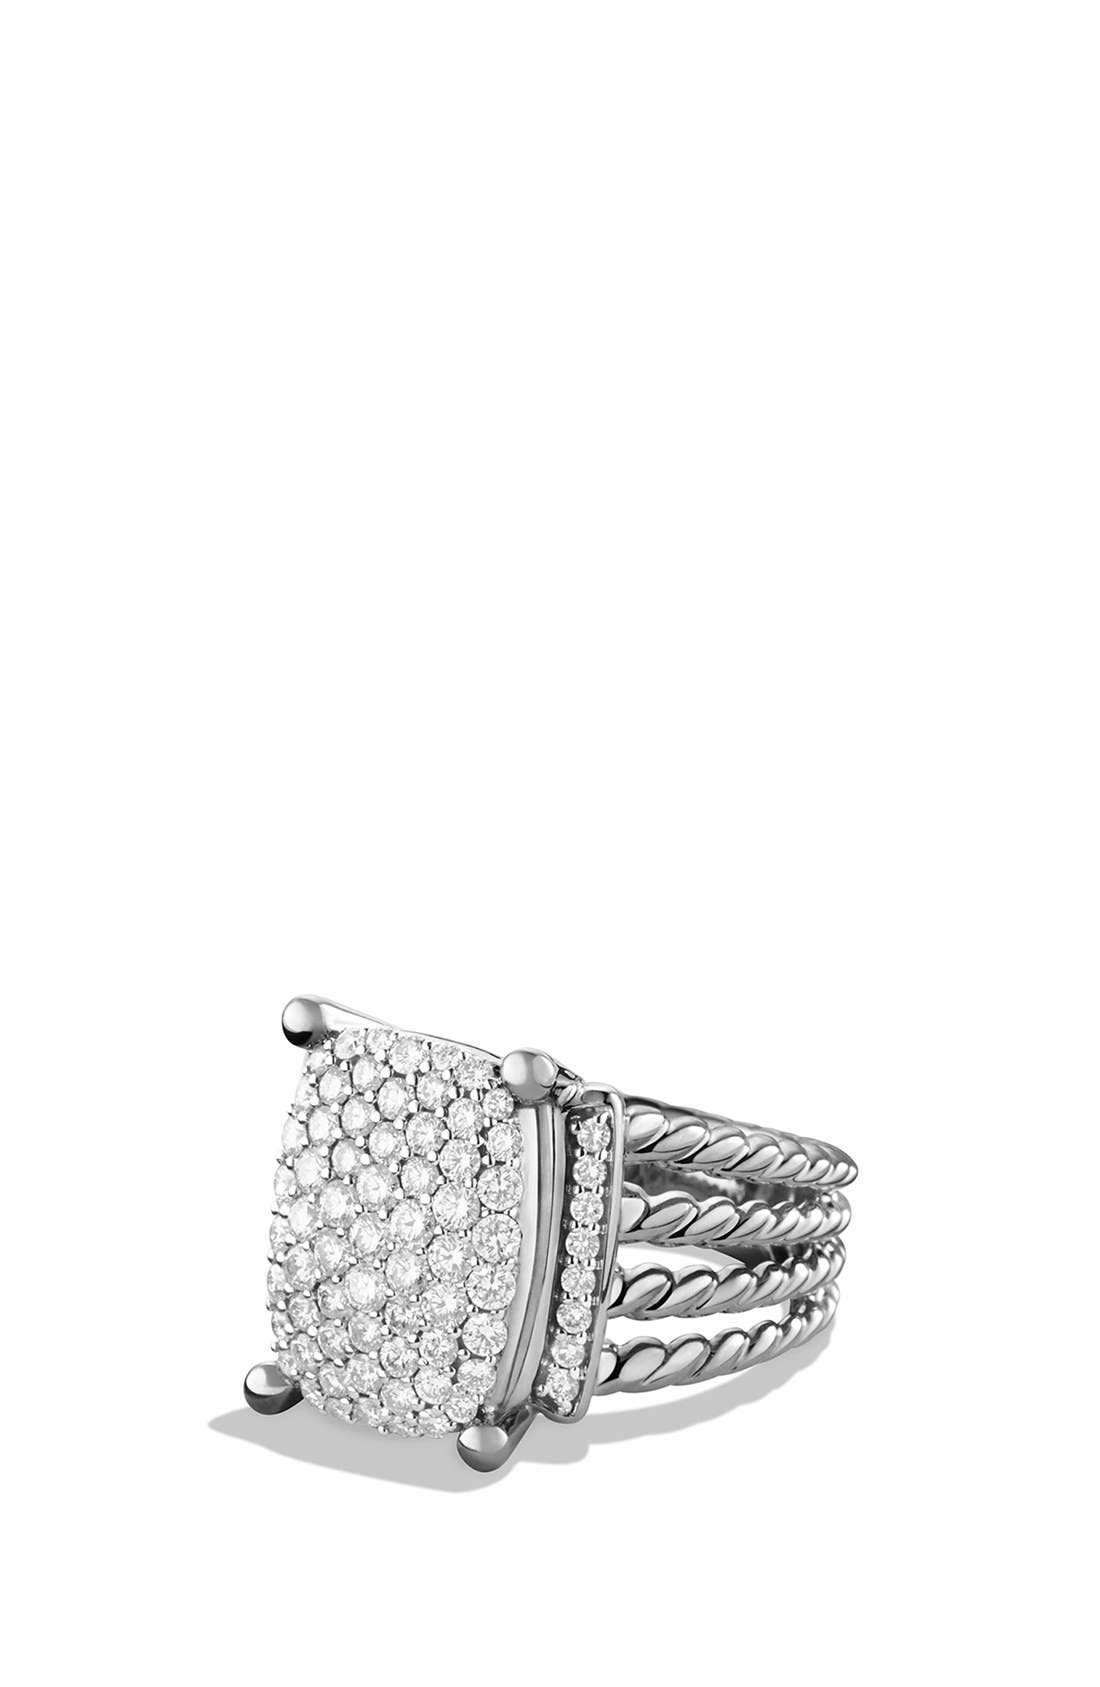 'Wheaton' Ring with Diamonds,                             Main thumbnail 1, color,                             DIAMOND